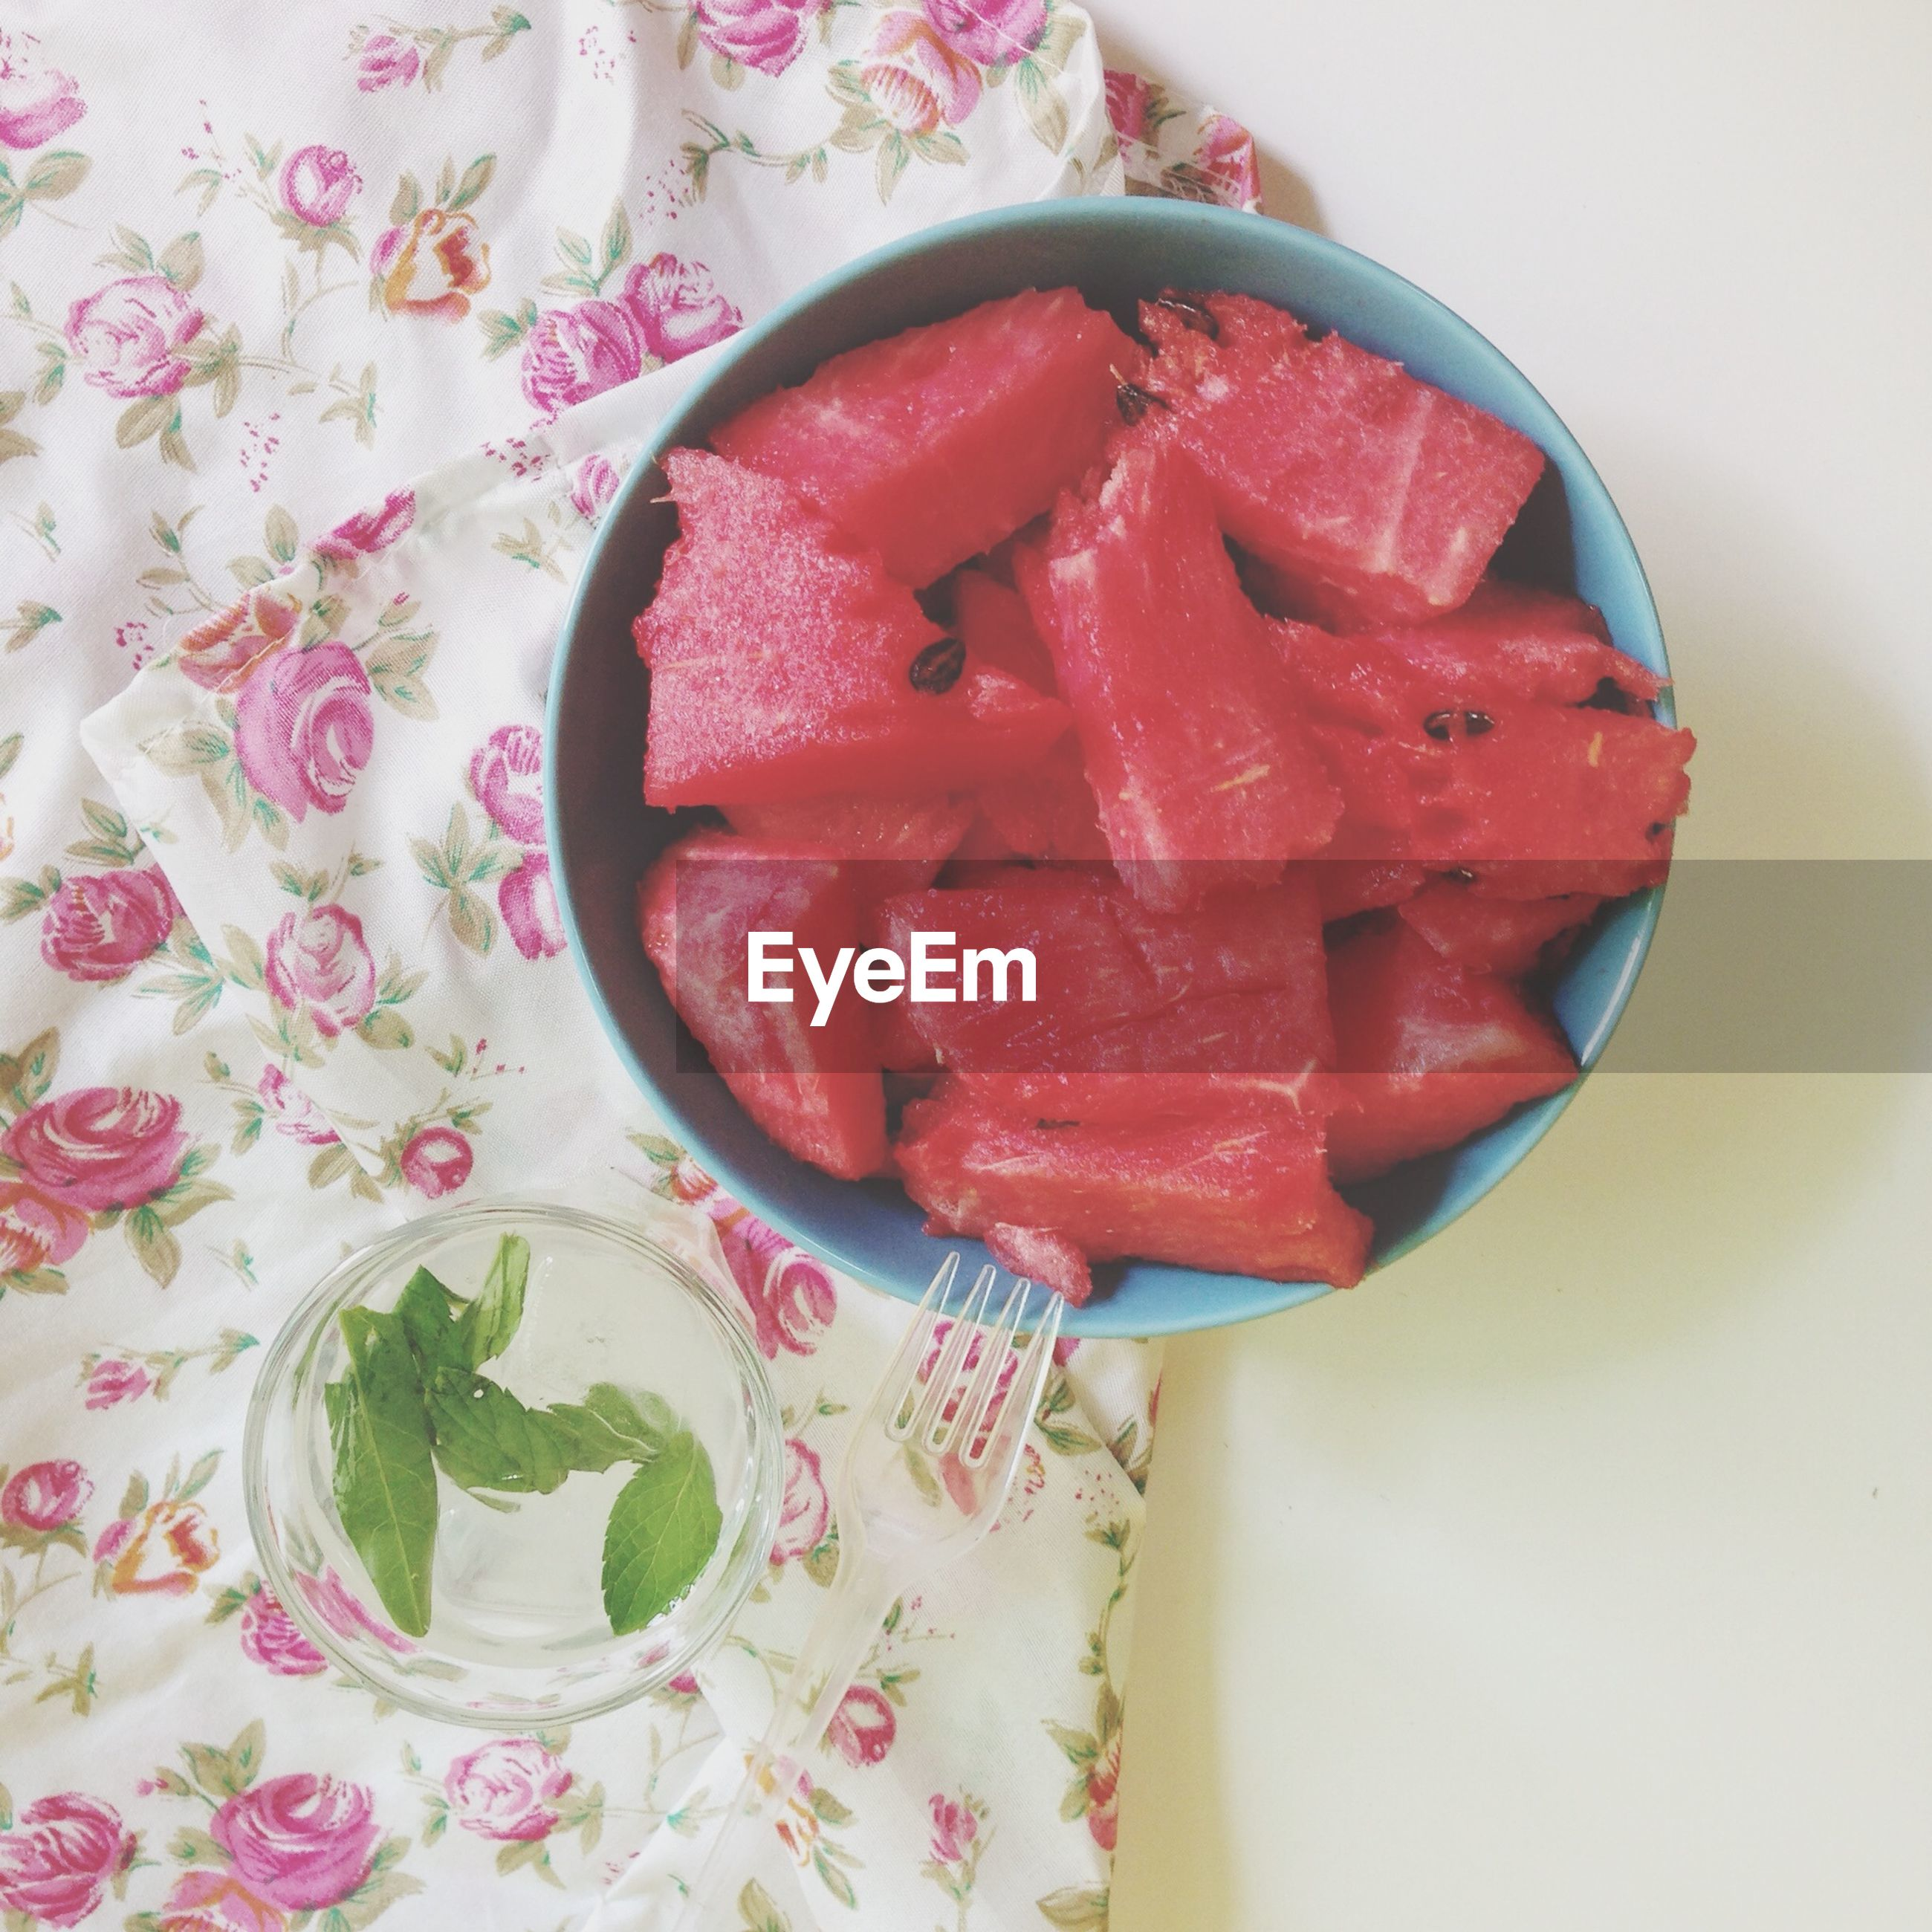 indoors, food and drink, freshness, food, still life, red, sweet food, high angle view, table, close-up, strawberry, plate, ready-to-eat, healthy eating, indulgence, dessert, bowl, fruit, directly above, temptation